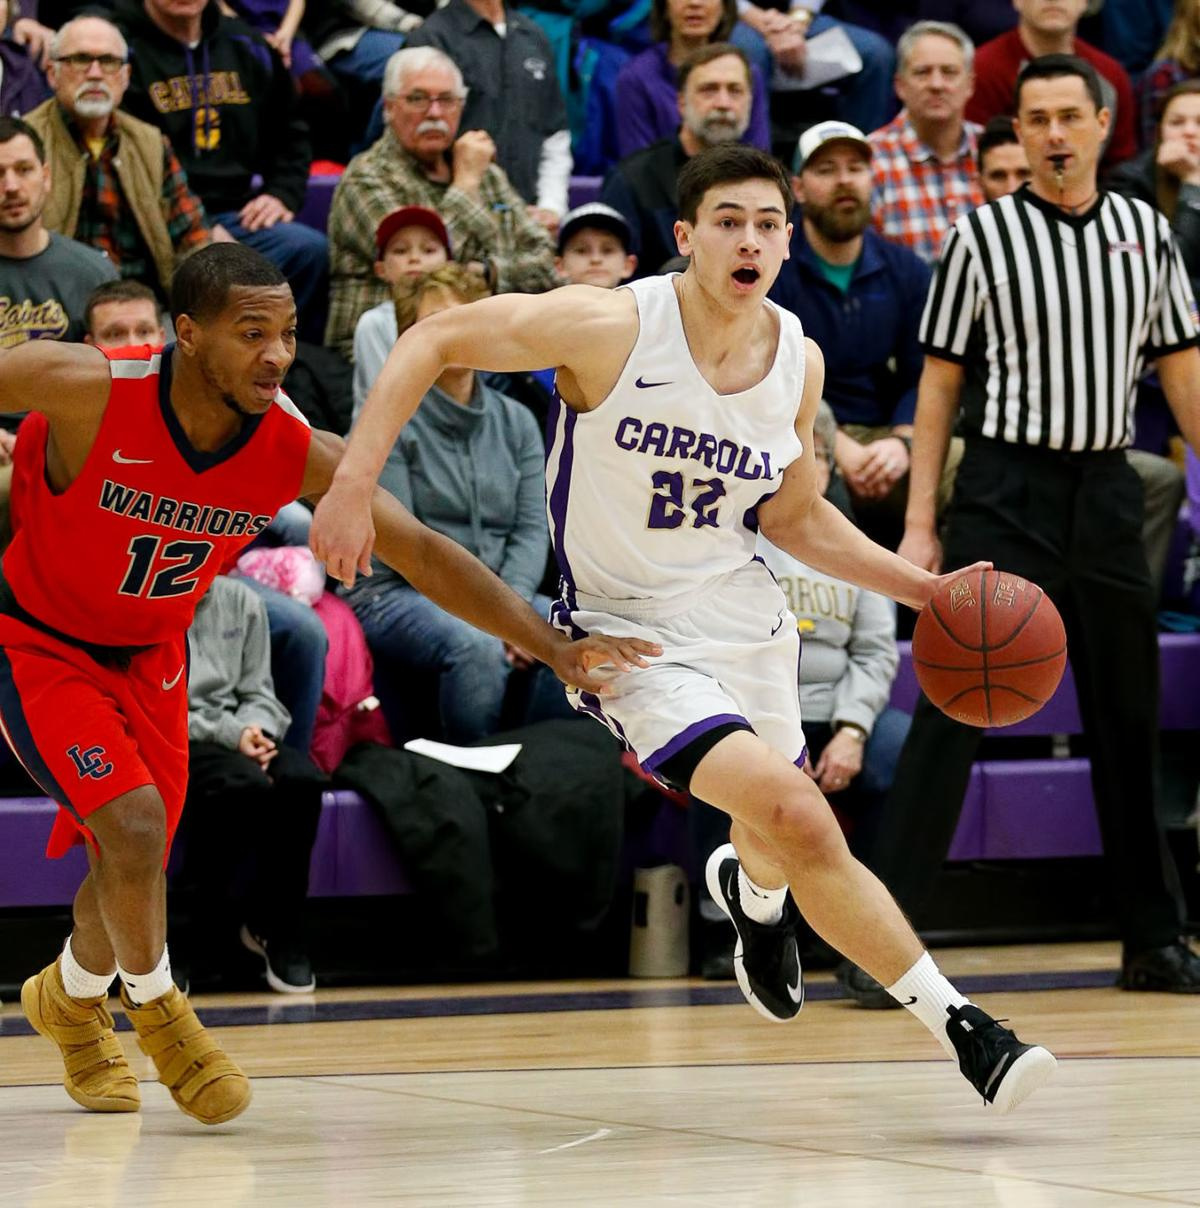 Long Layoff Has Carroll College Men Ready For Naia